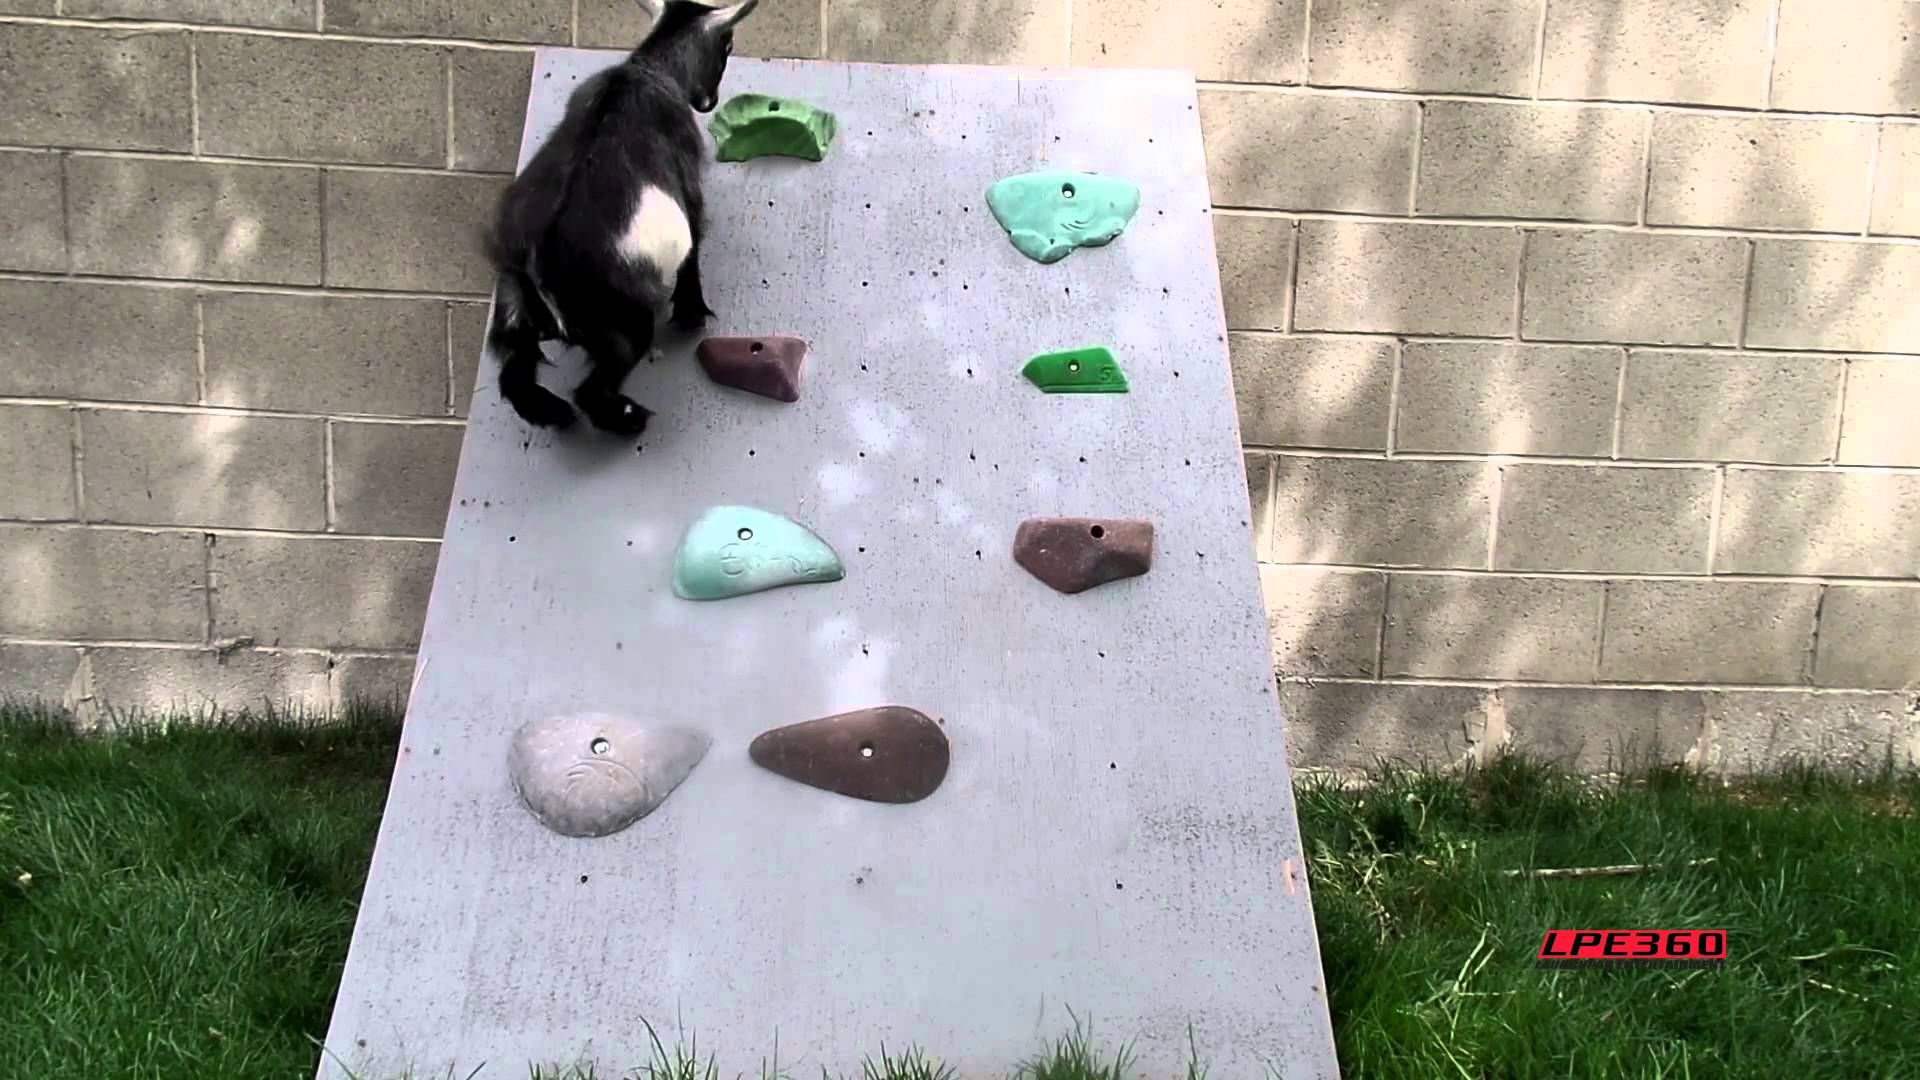 Rock Climbing Goat https://www.youtube.com/attribution_link?a=M9h17ff0d6s&u=%2Fwatch%3Fv%3DKCZEE1S8rpI%26feature%3Dshare